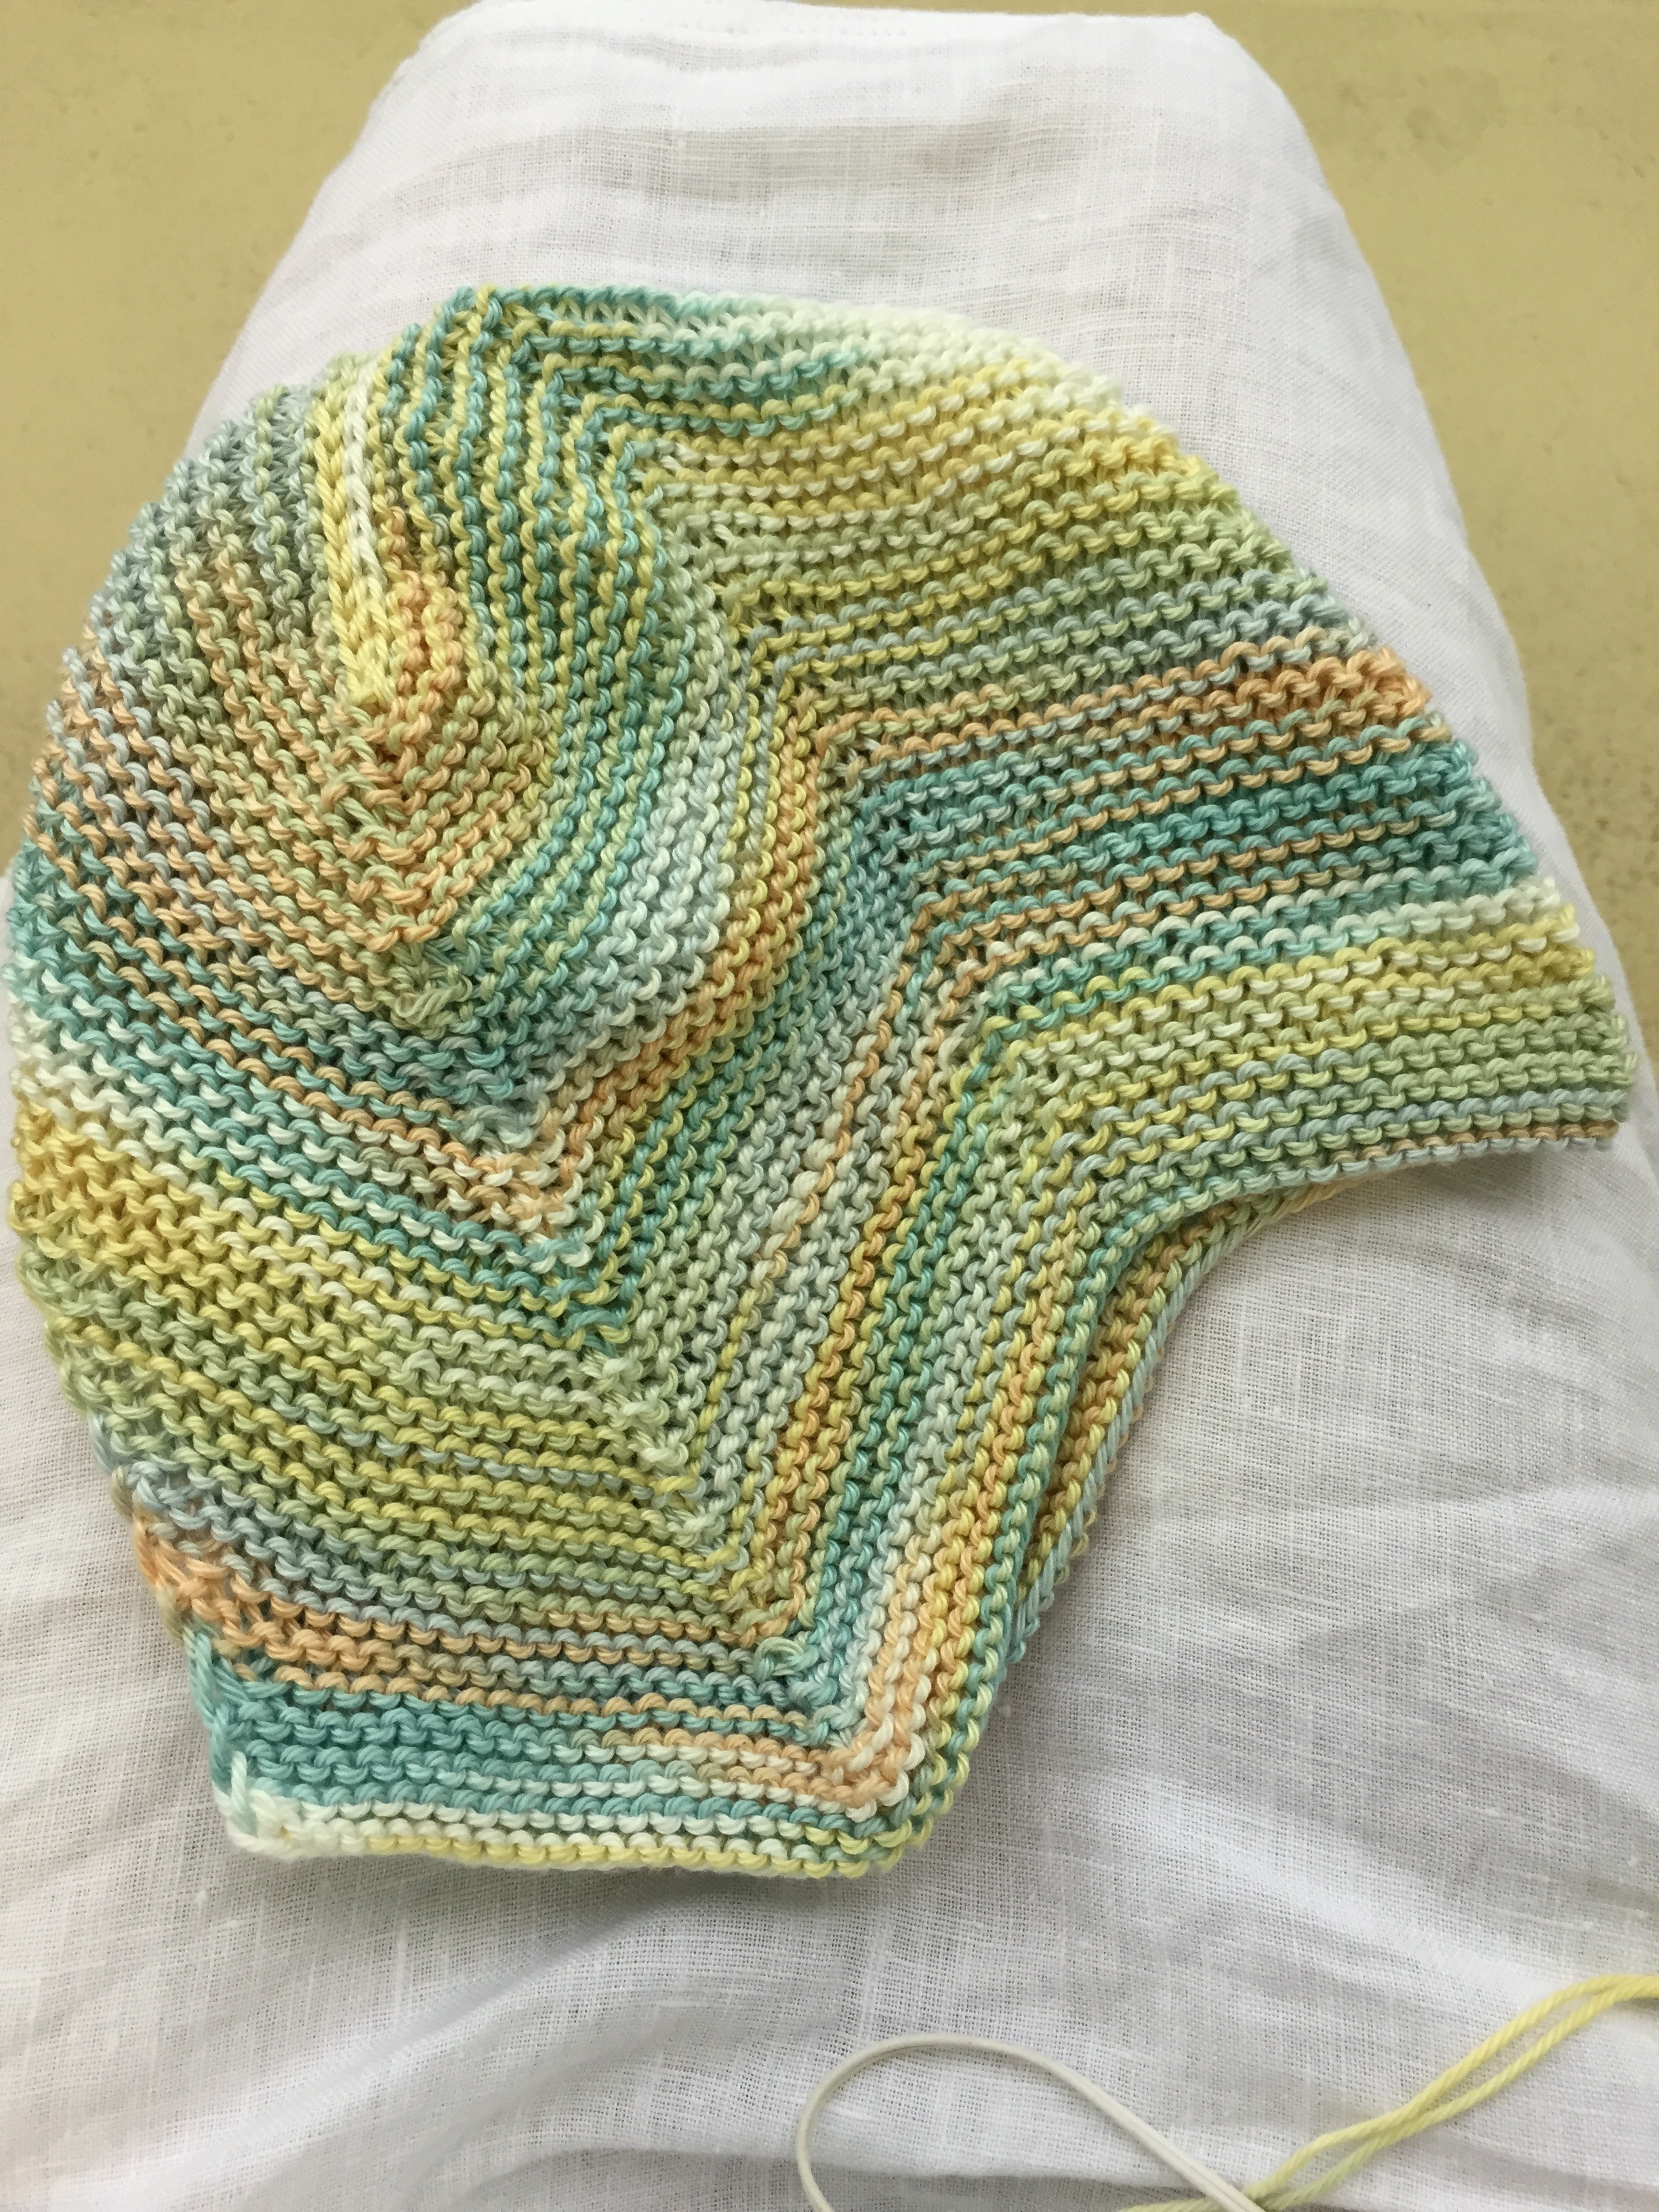 Garter Stitch baby cap before i-cord ties.